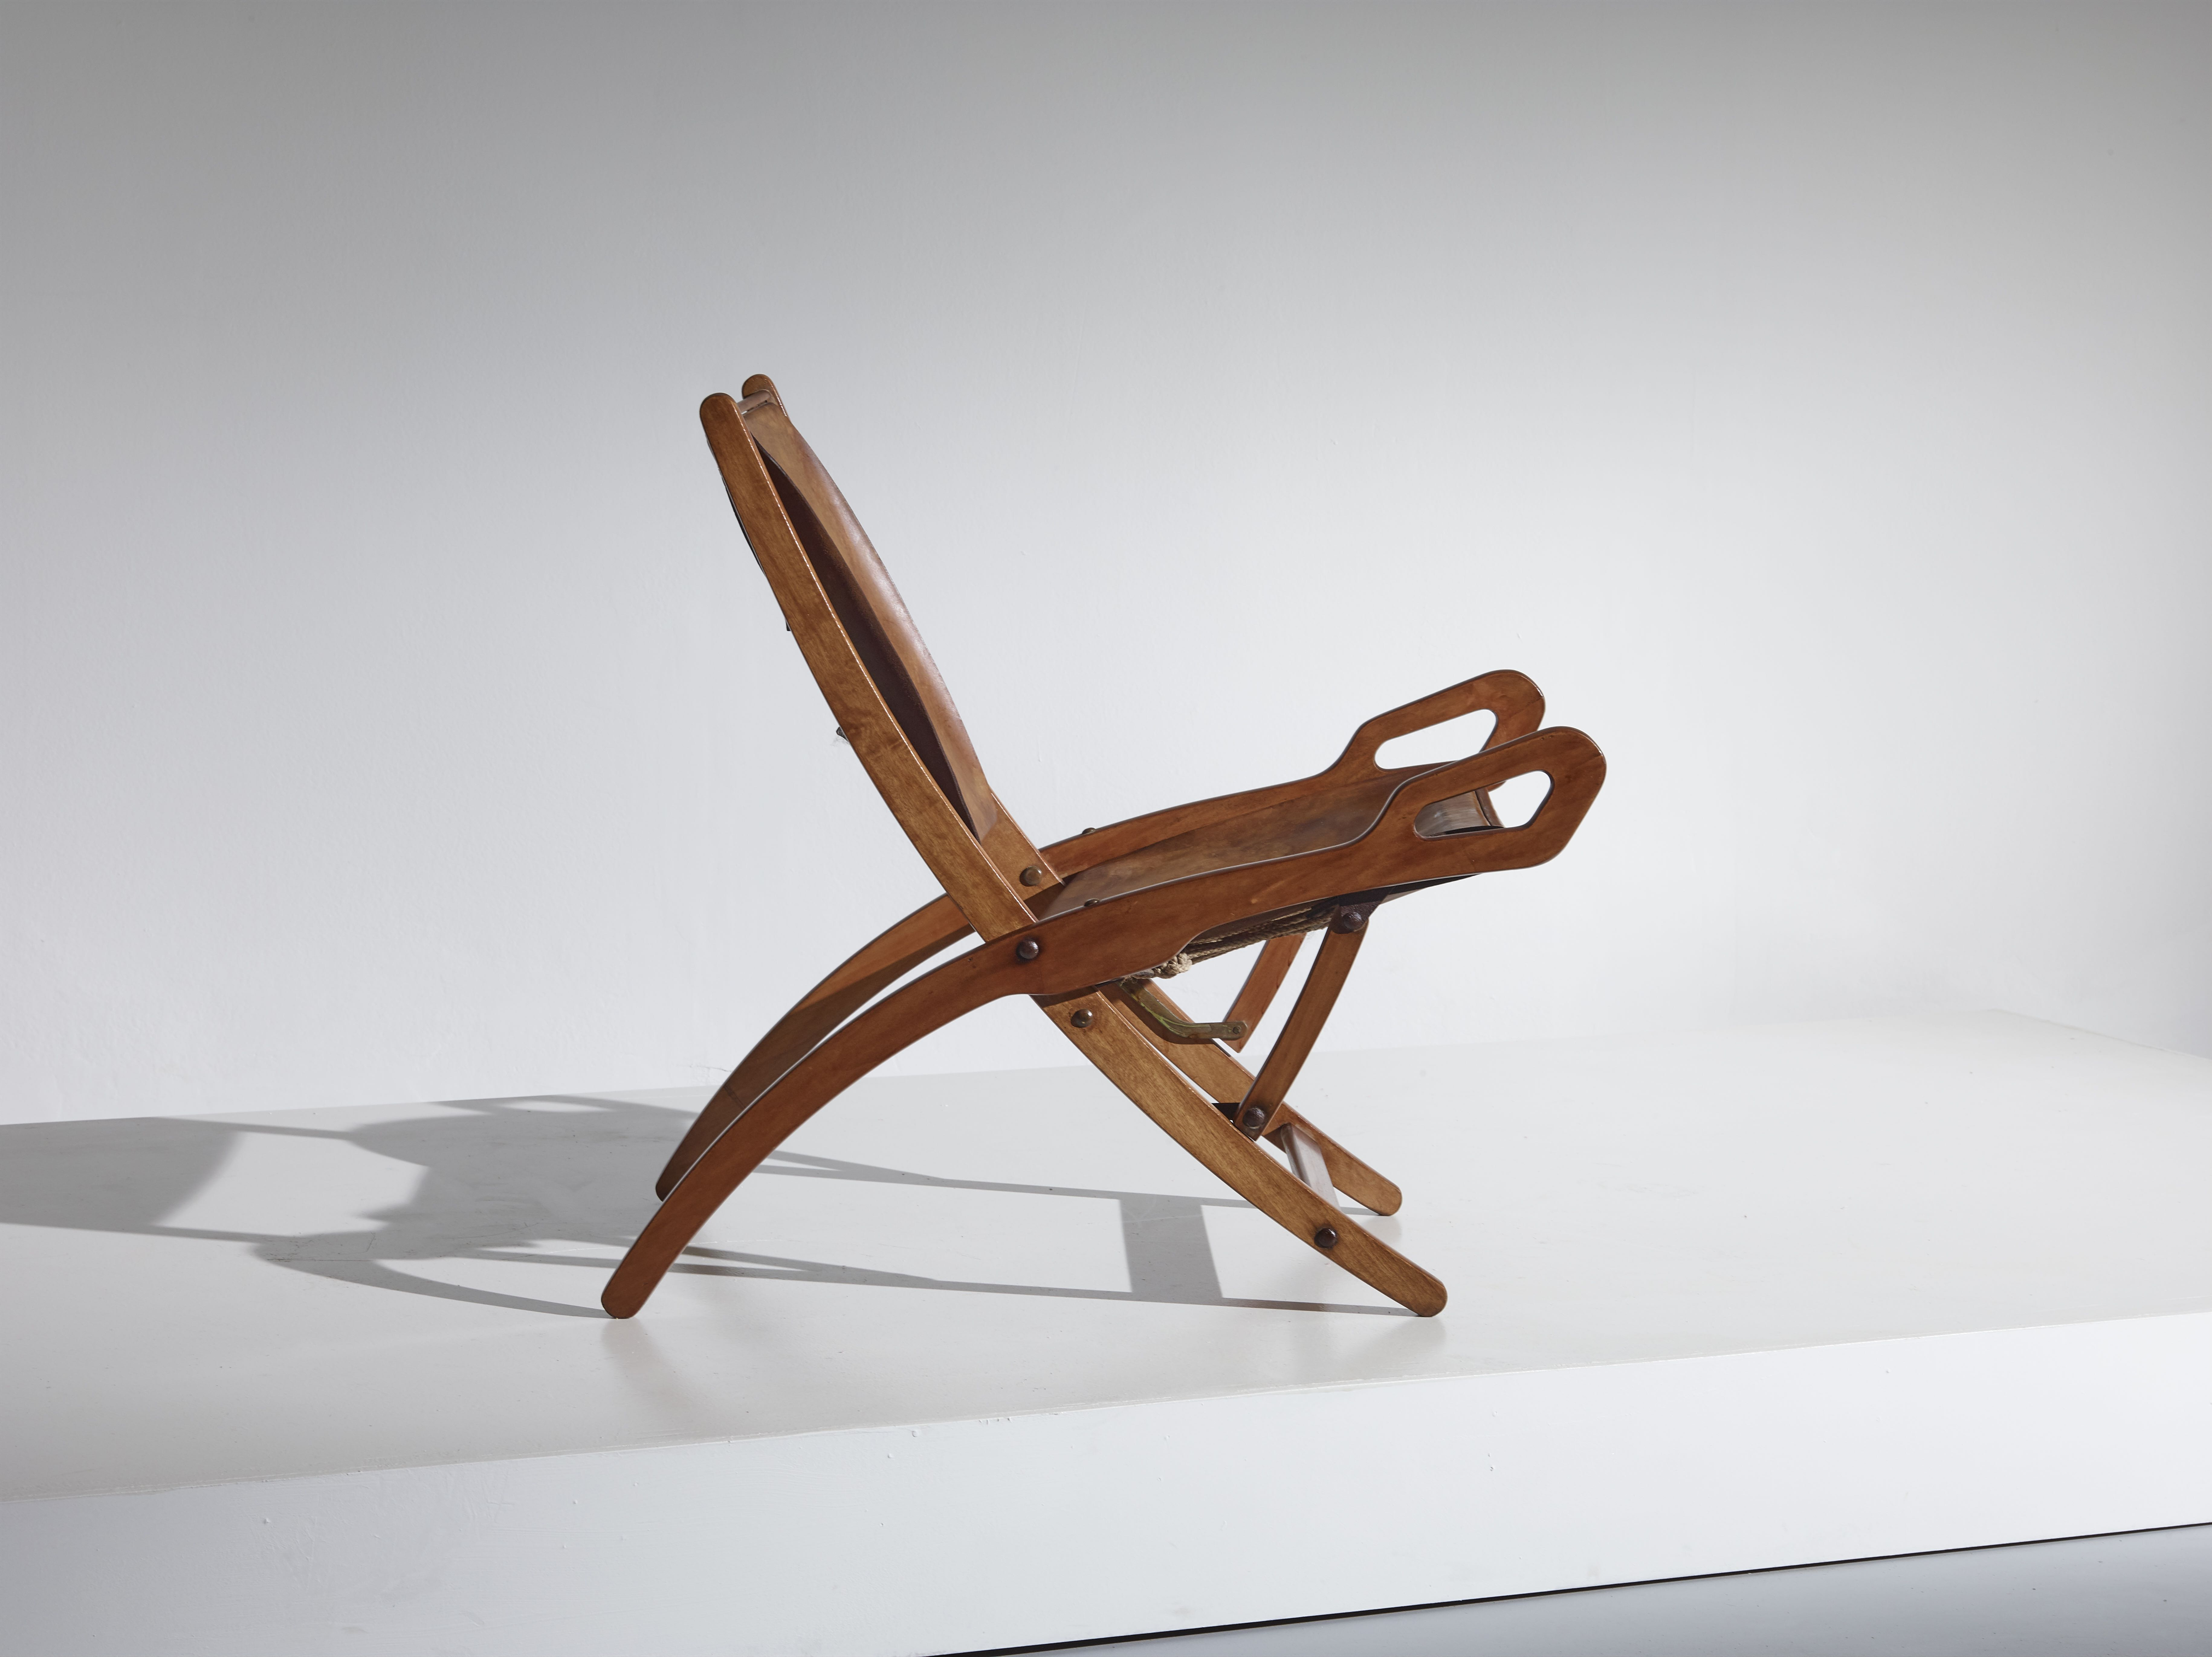 Ninfea folding chair by Gio Ponti for Fratelli Reguitti - Italy 1958